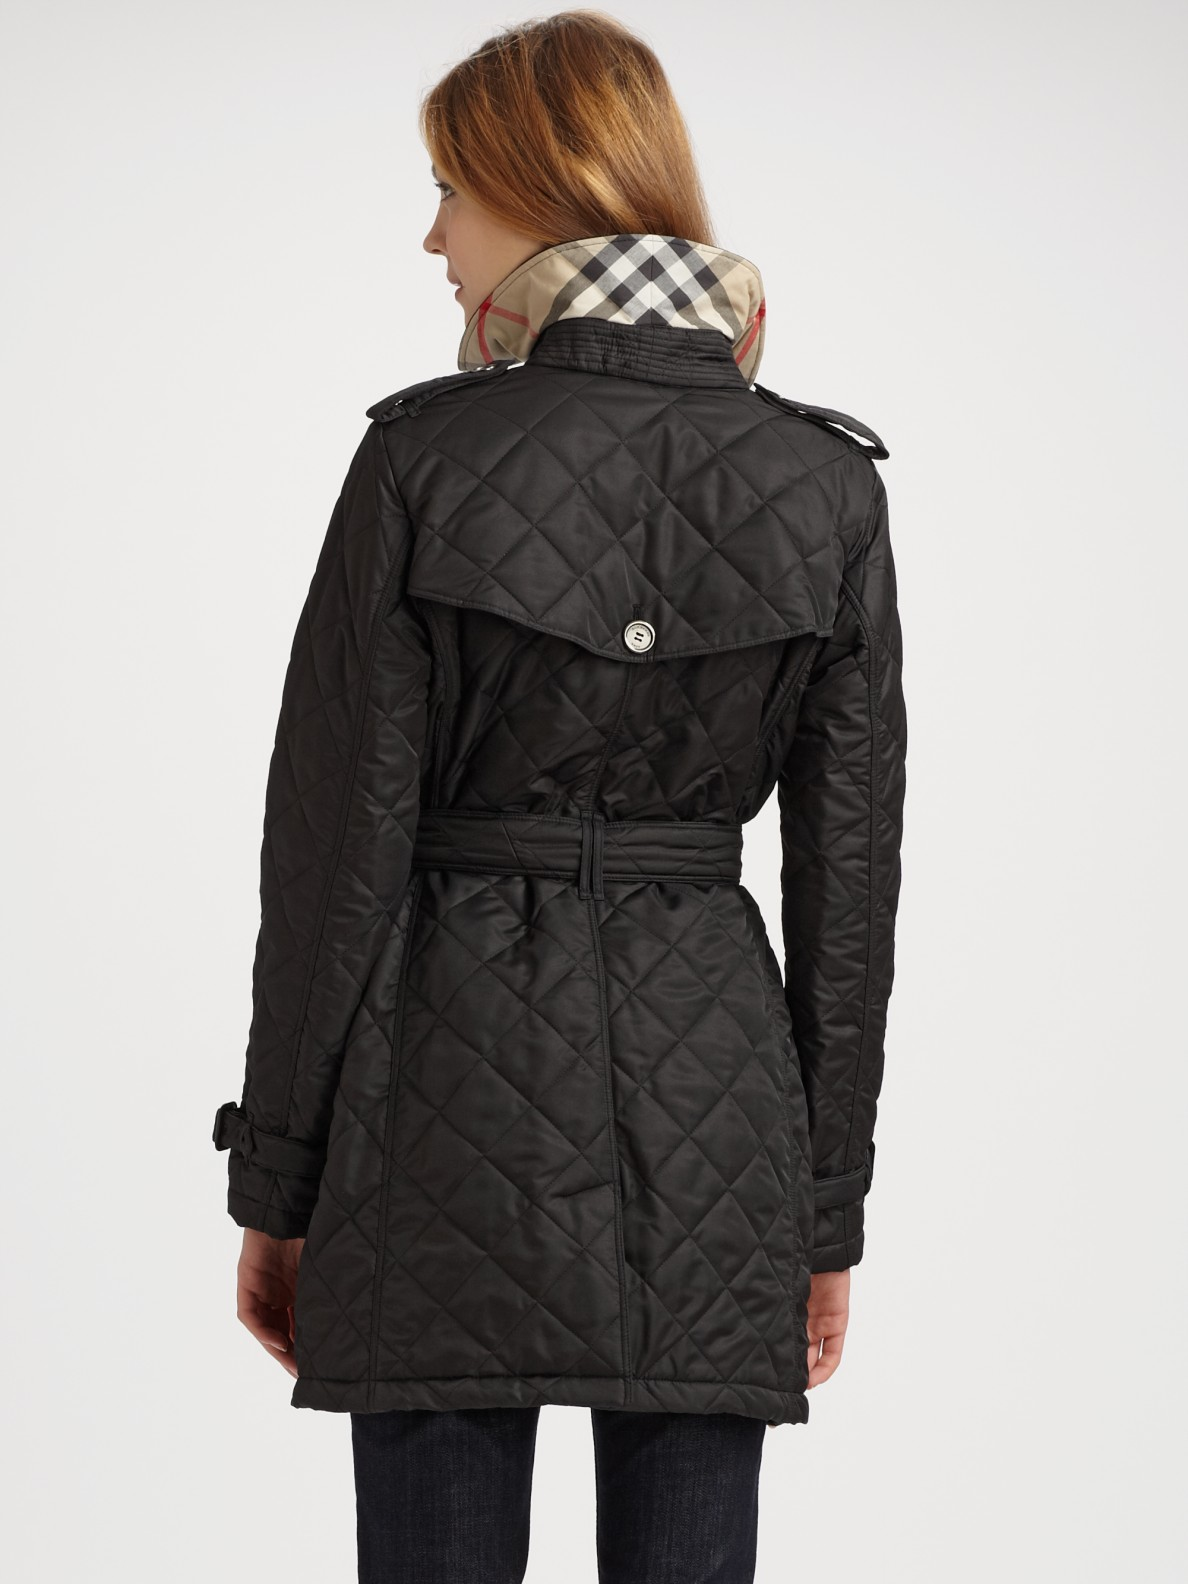 Burberry brit Quilted Trench Jacket in Black | Lyst : burberry quilted trench - Adamdwight.com